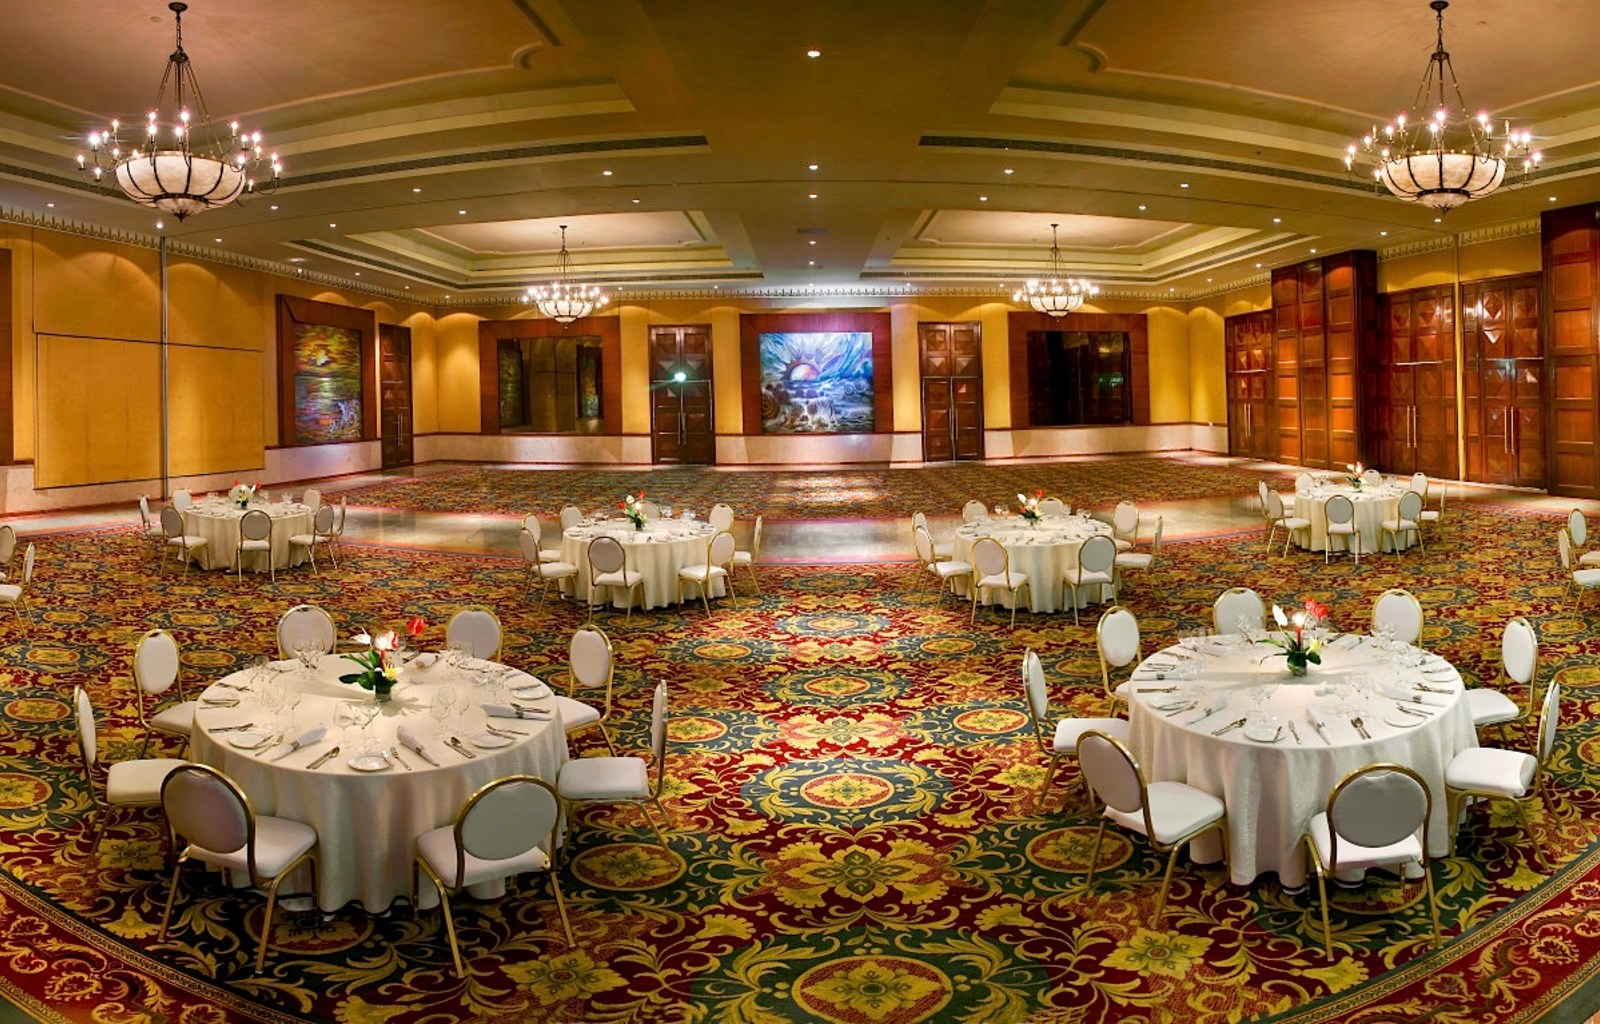 The 10 Most Popular Banquet Halls In Mumbai